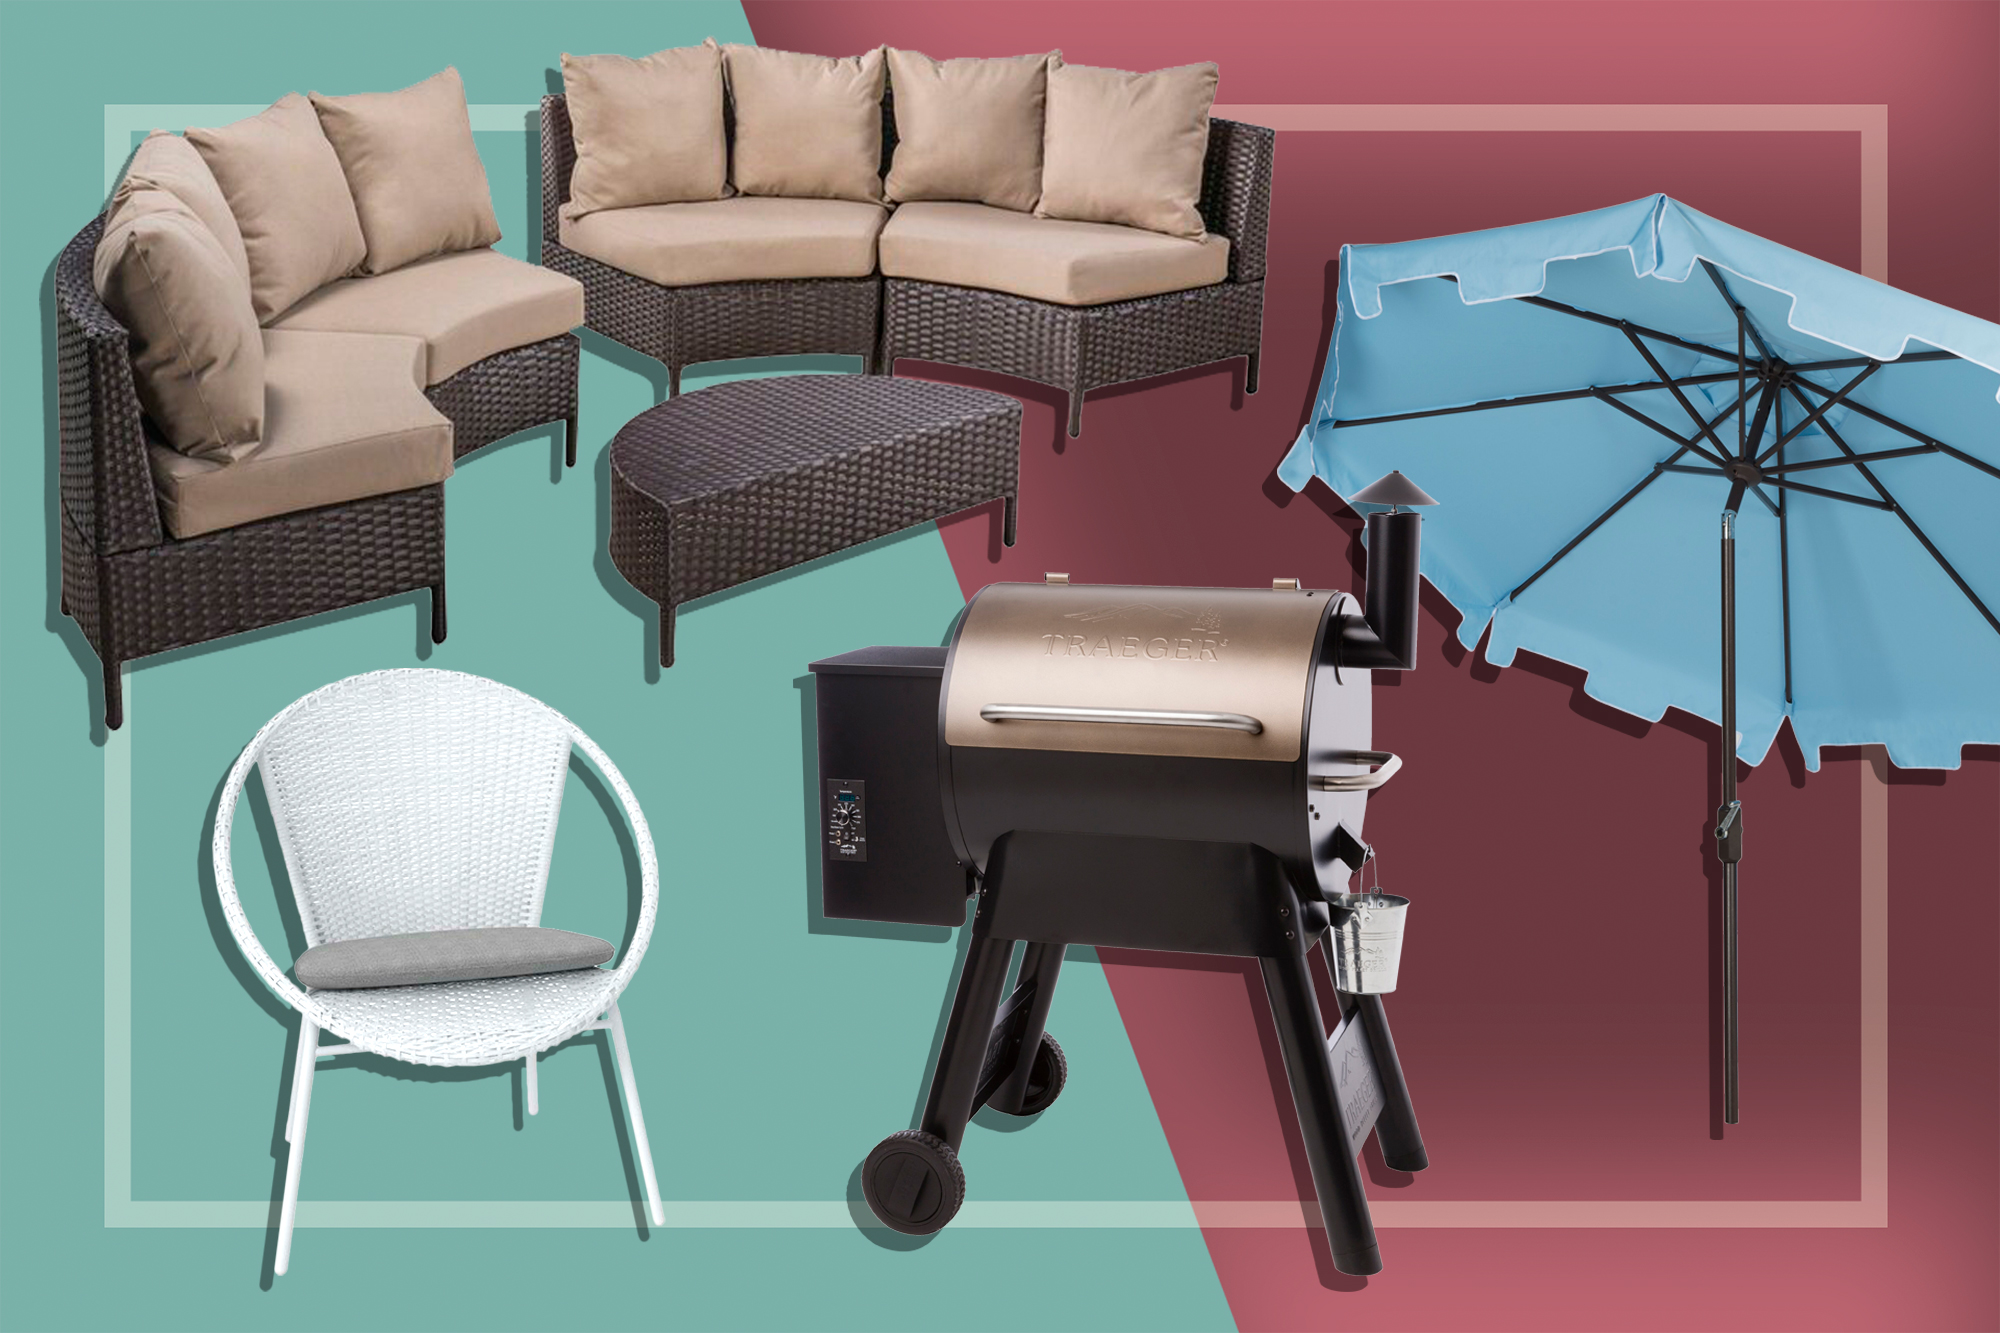 Wayfair Outdoor Sale Items: Chair, Grill, Furniture, Umbrella